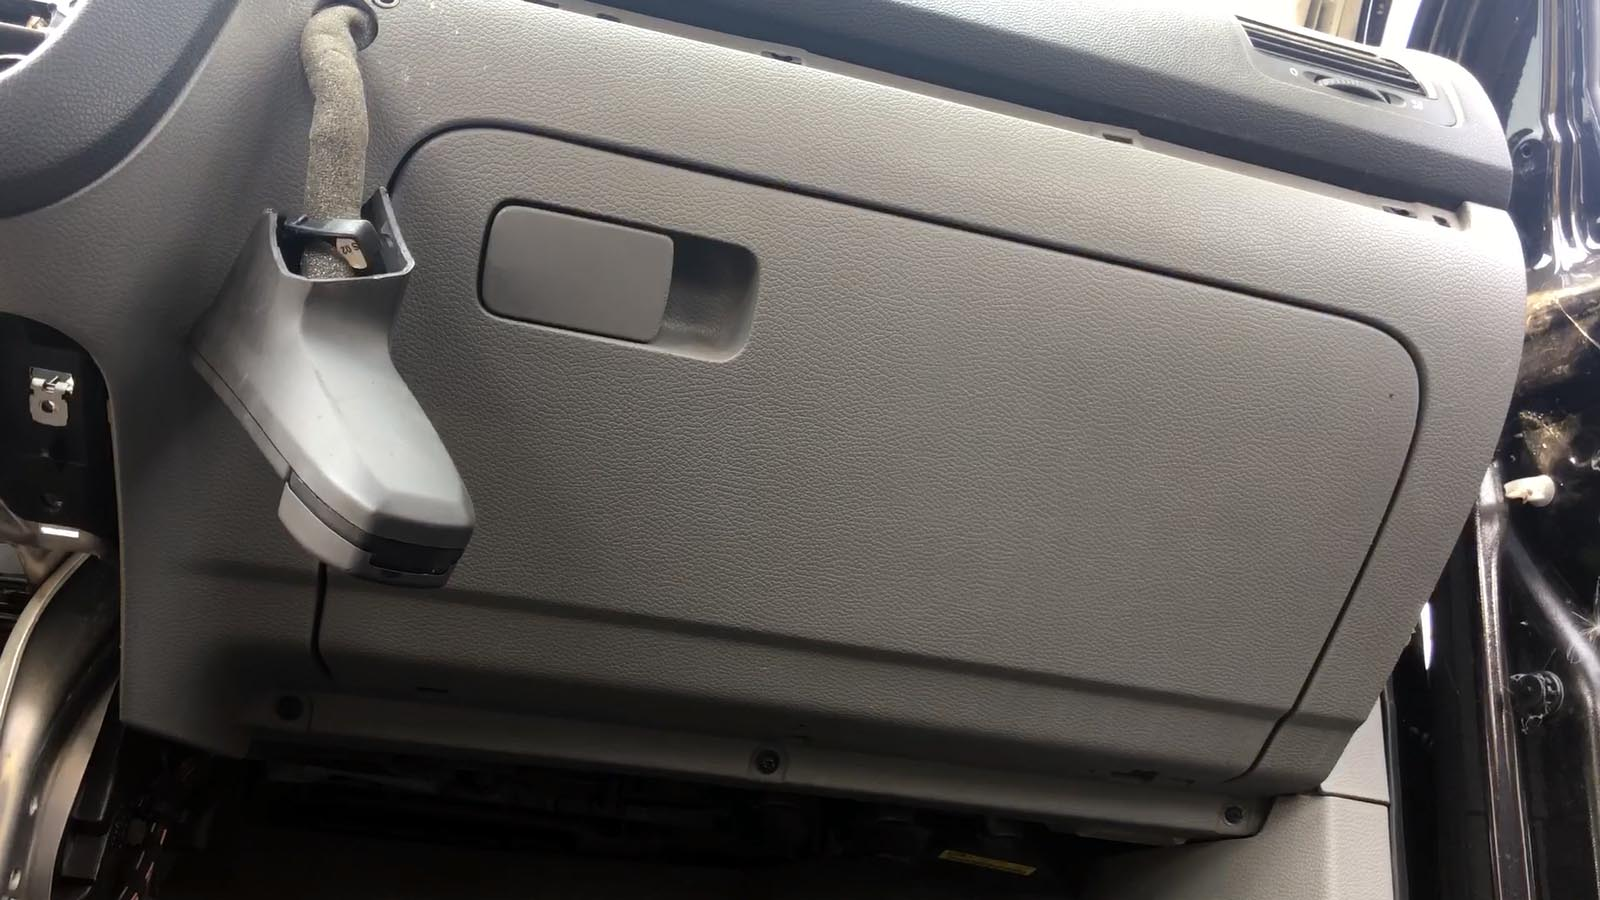 How To Remove    Replace Glove Box On Vw Golf Mk5  Jetta